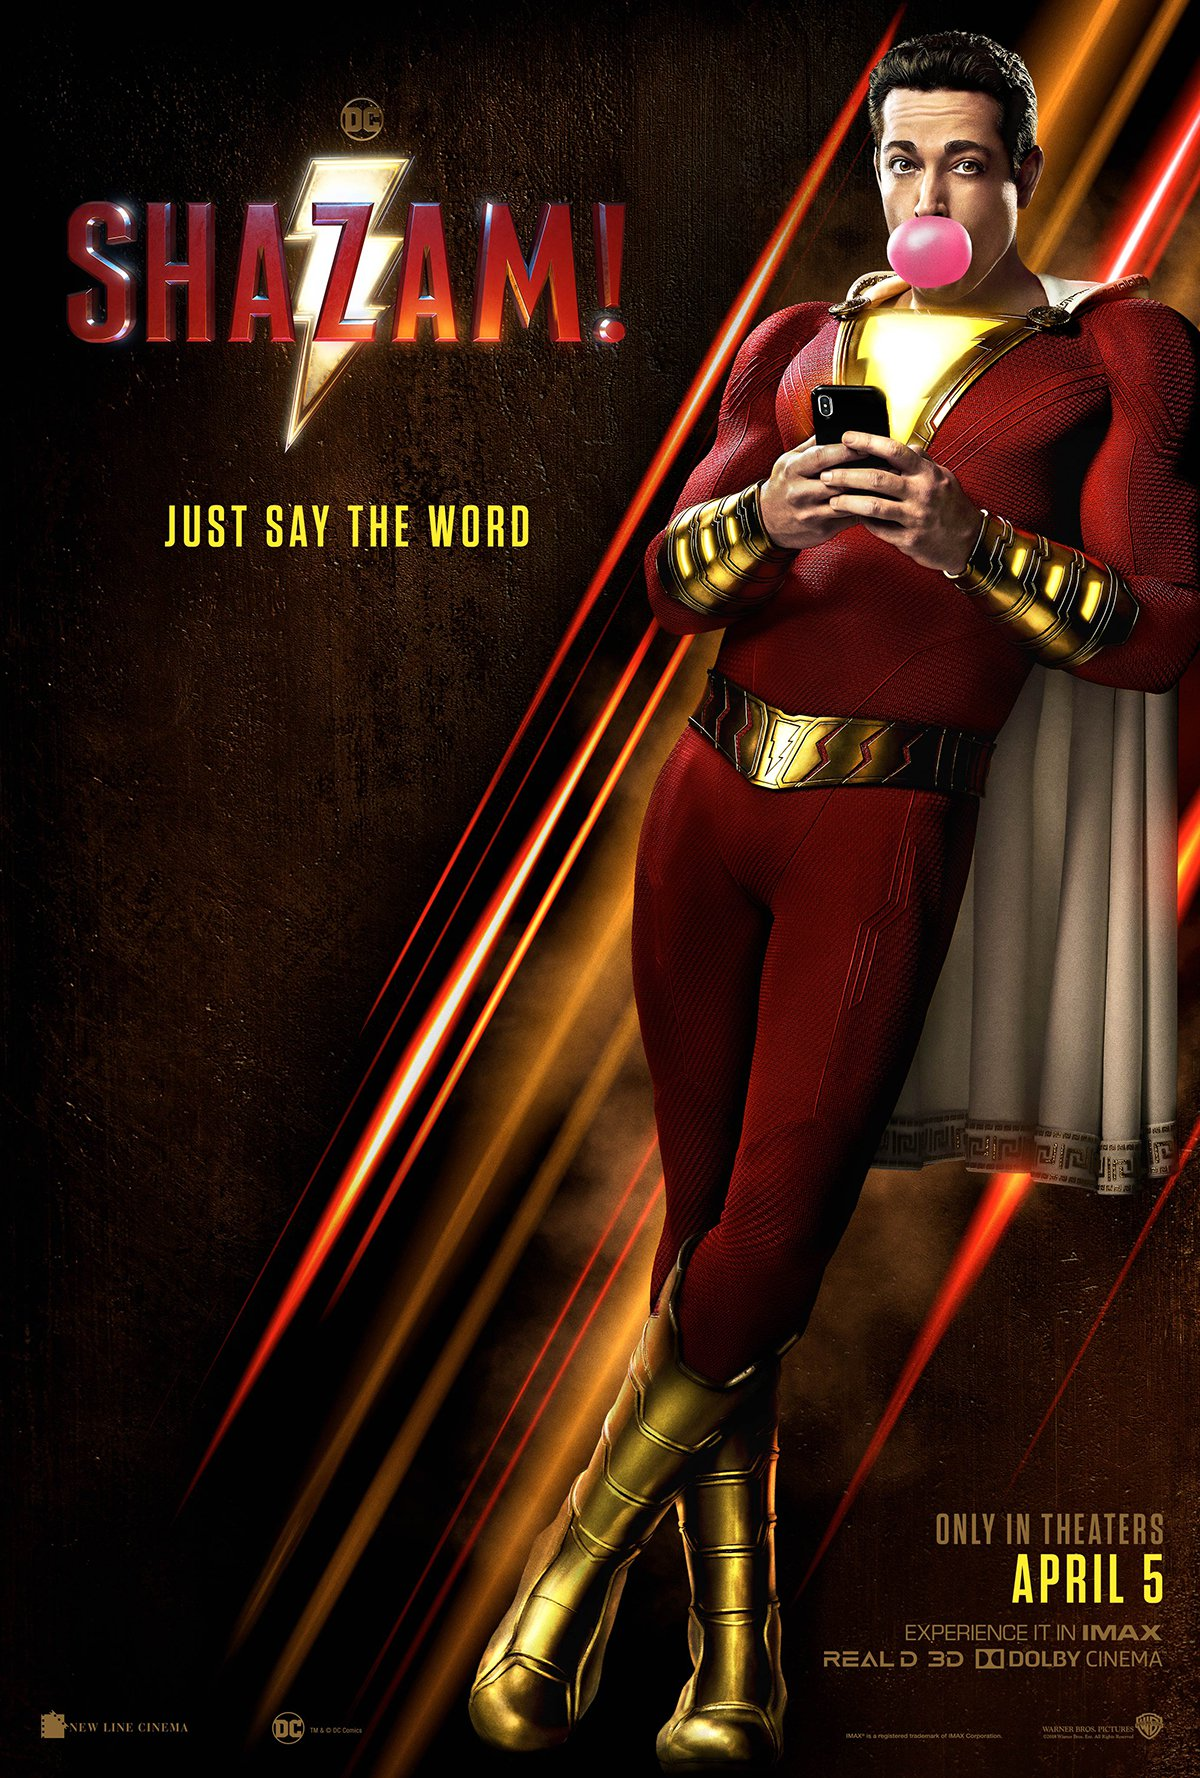 New Poster For SHAZAM! Asks Us To Just Say The Word1